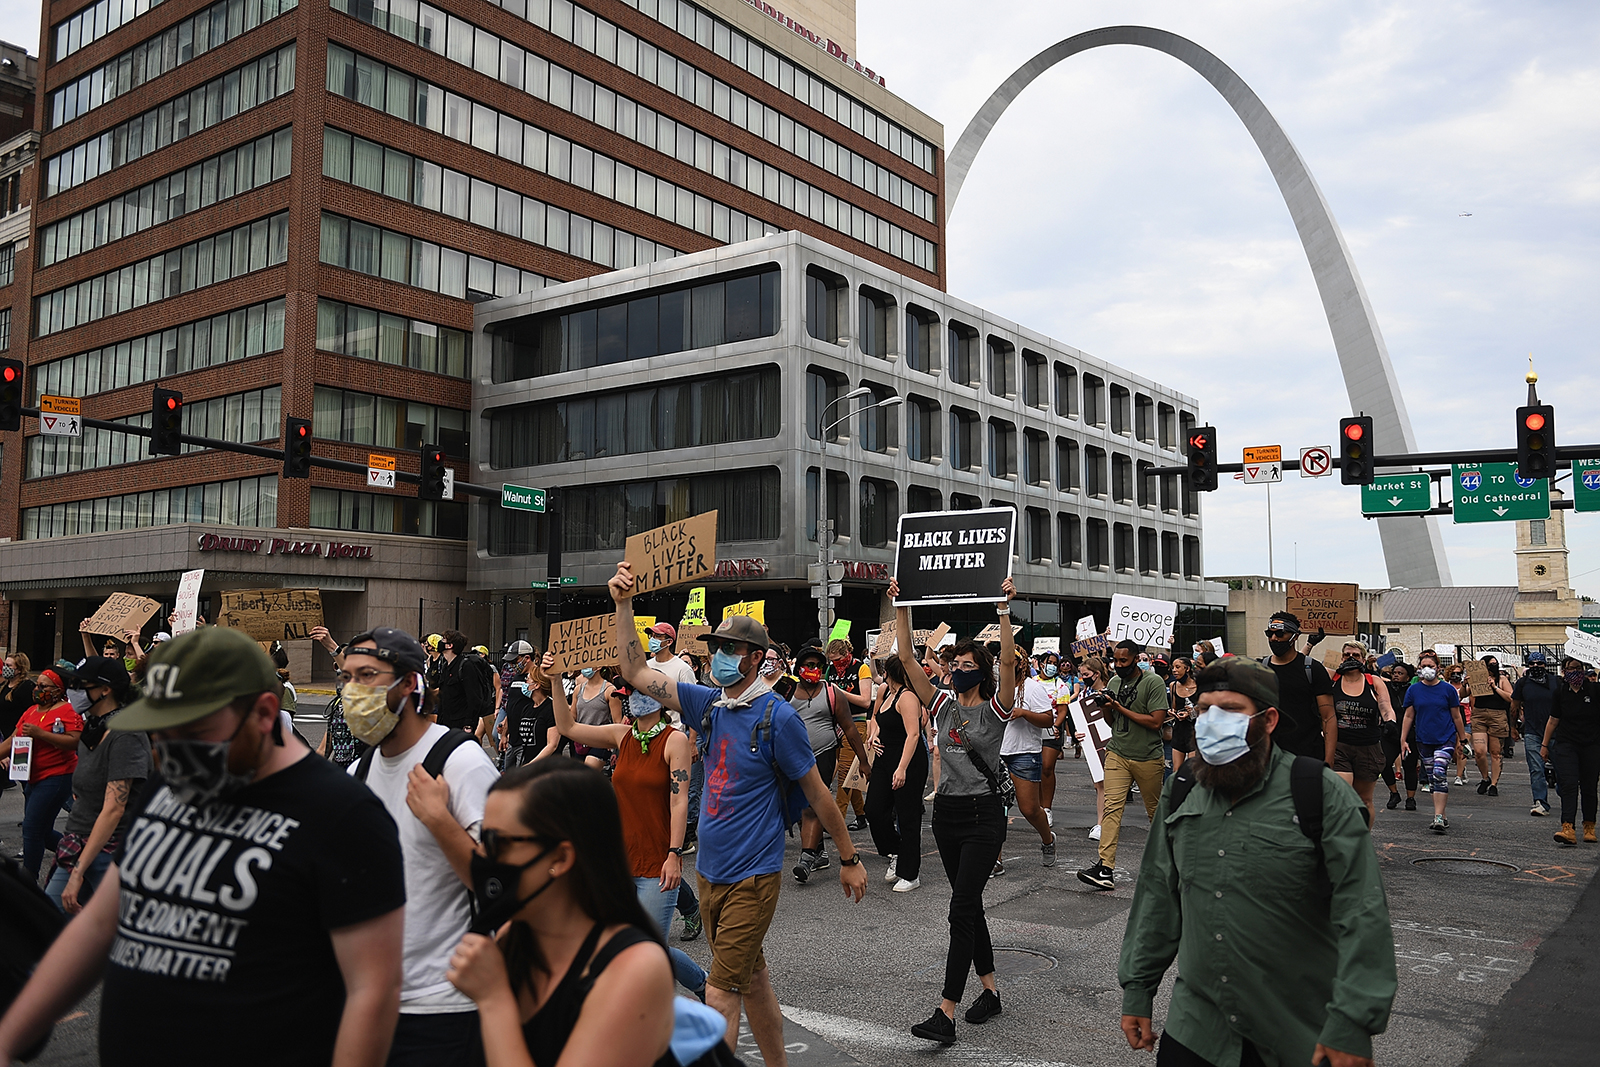 Protesters demonstrate against police brutality and the death of George Floyd through downtown St. Louis on June 1, in St Louis, Missouri.